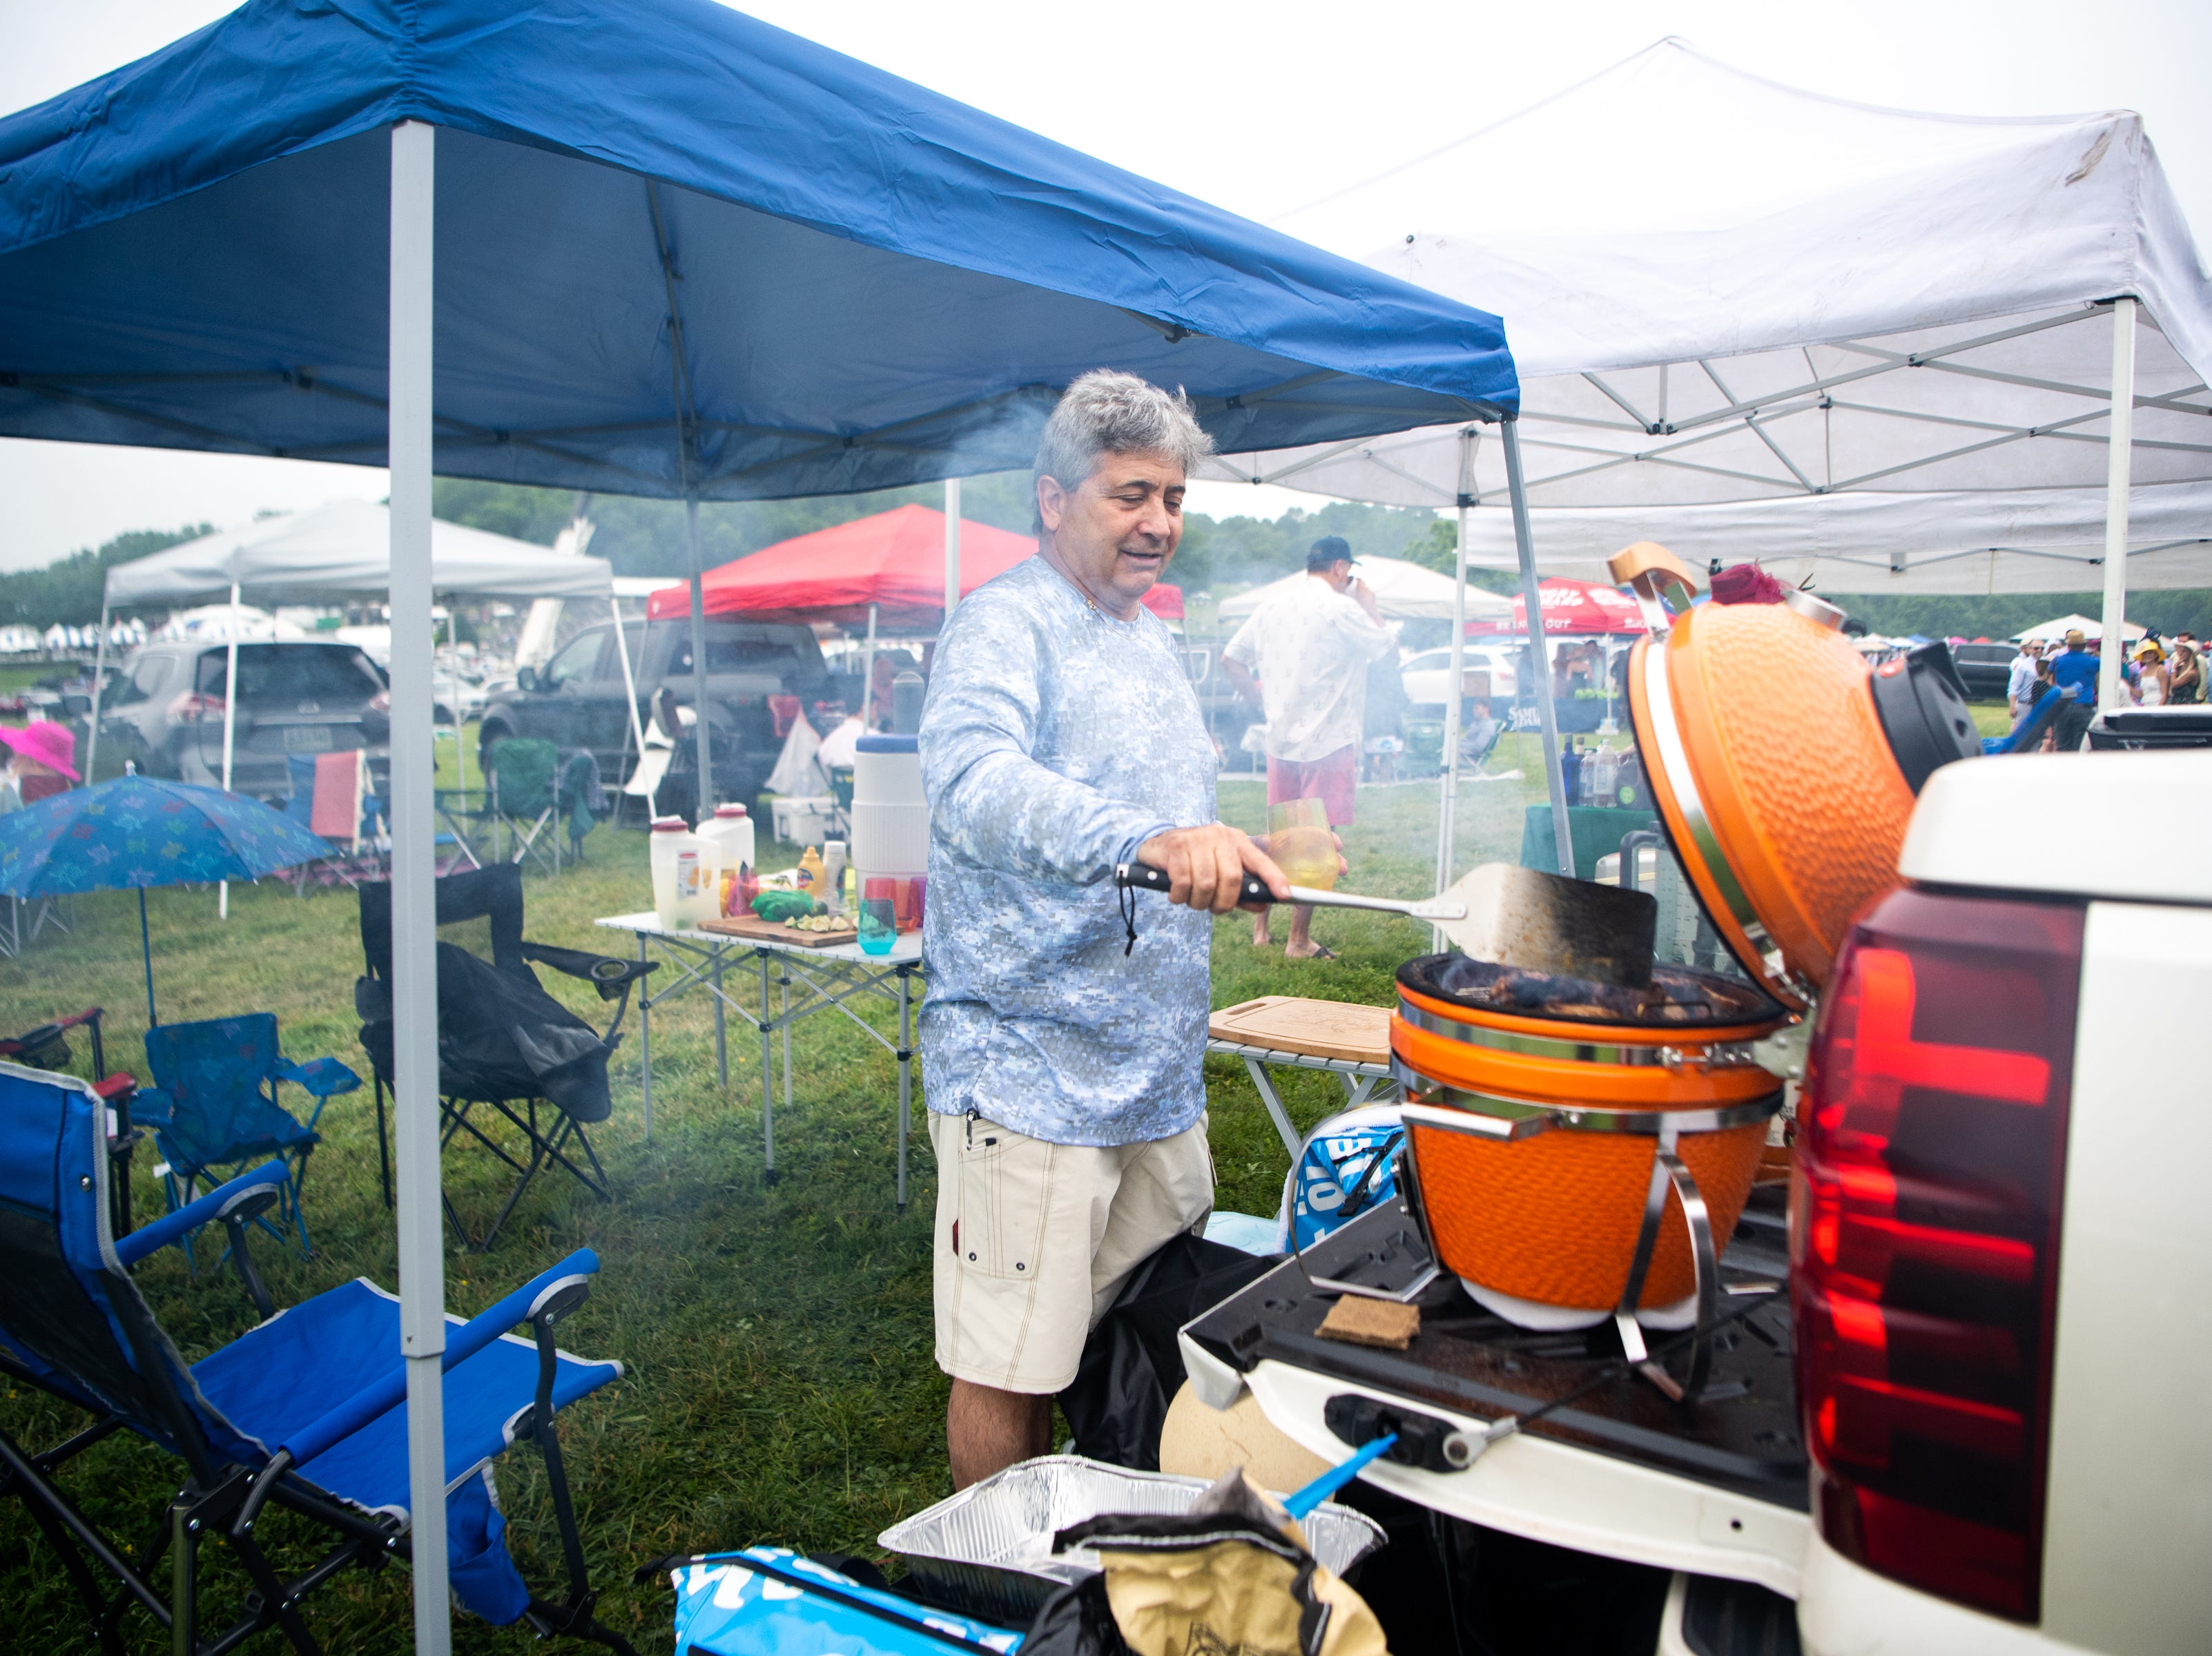 Carl Maltese grills during the Iroquois Steeplechase at Percy Warner Park Saturday, May 11, 2019, in Nashville, Tenn.